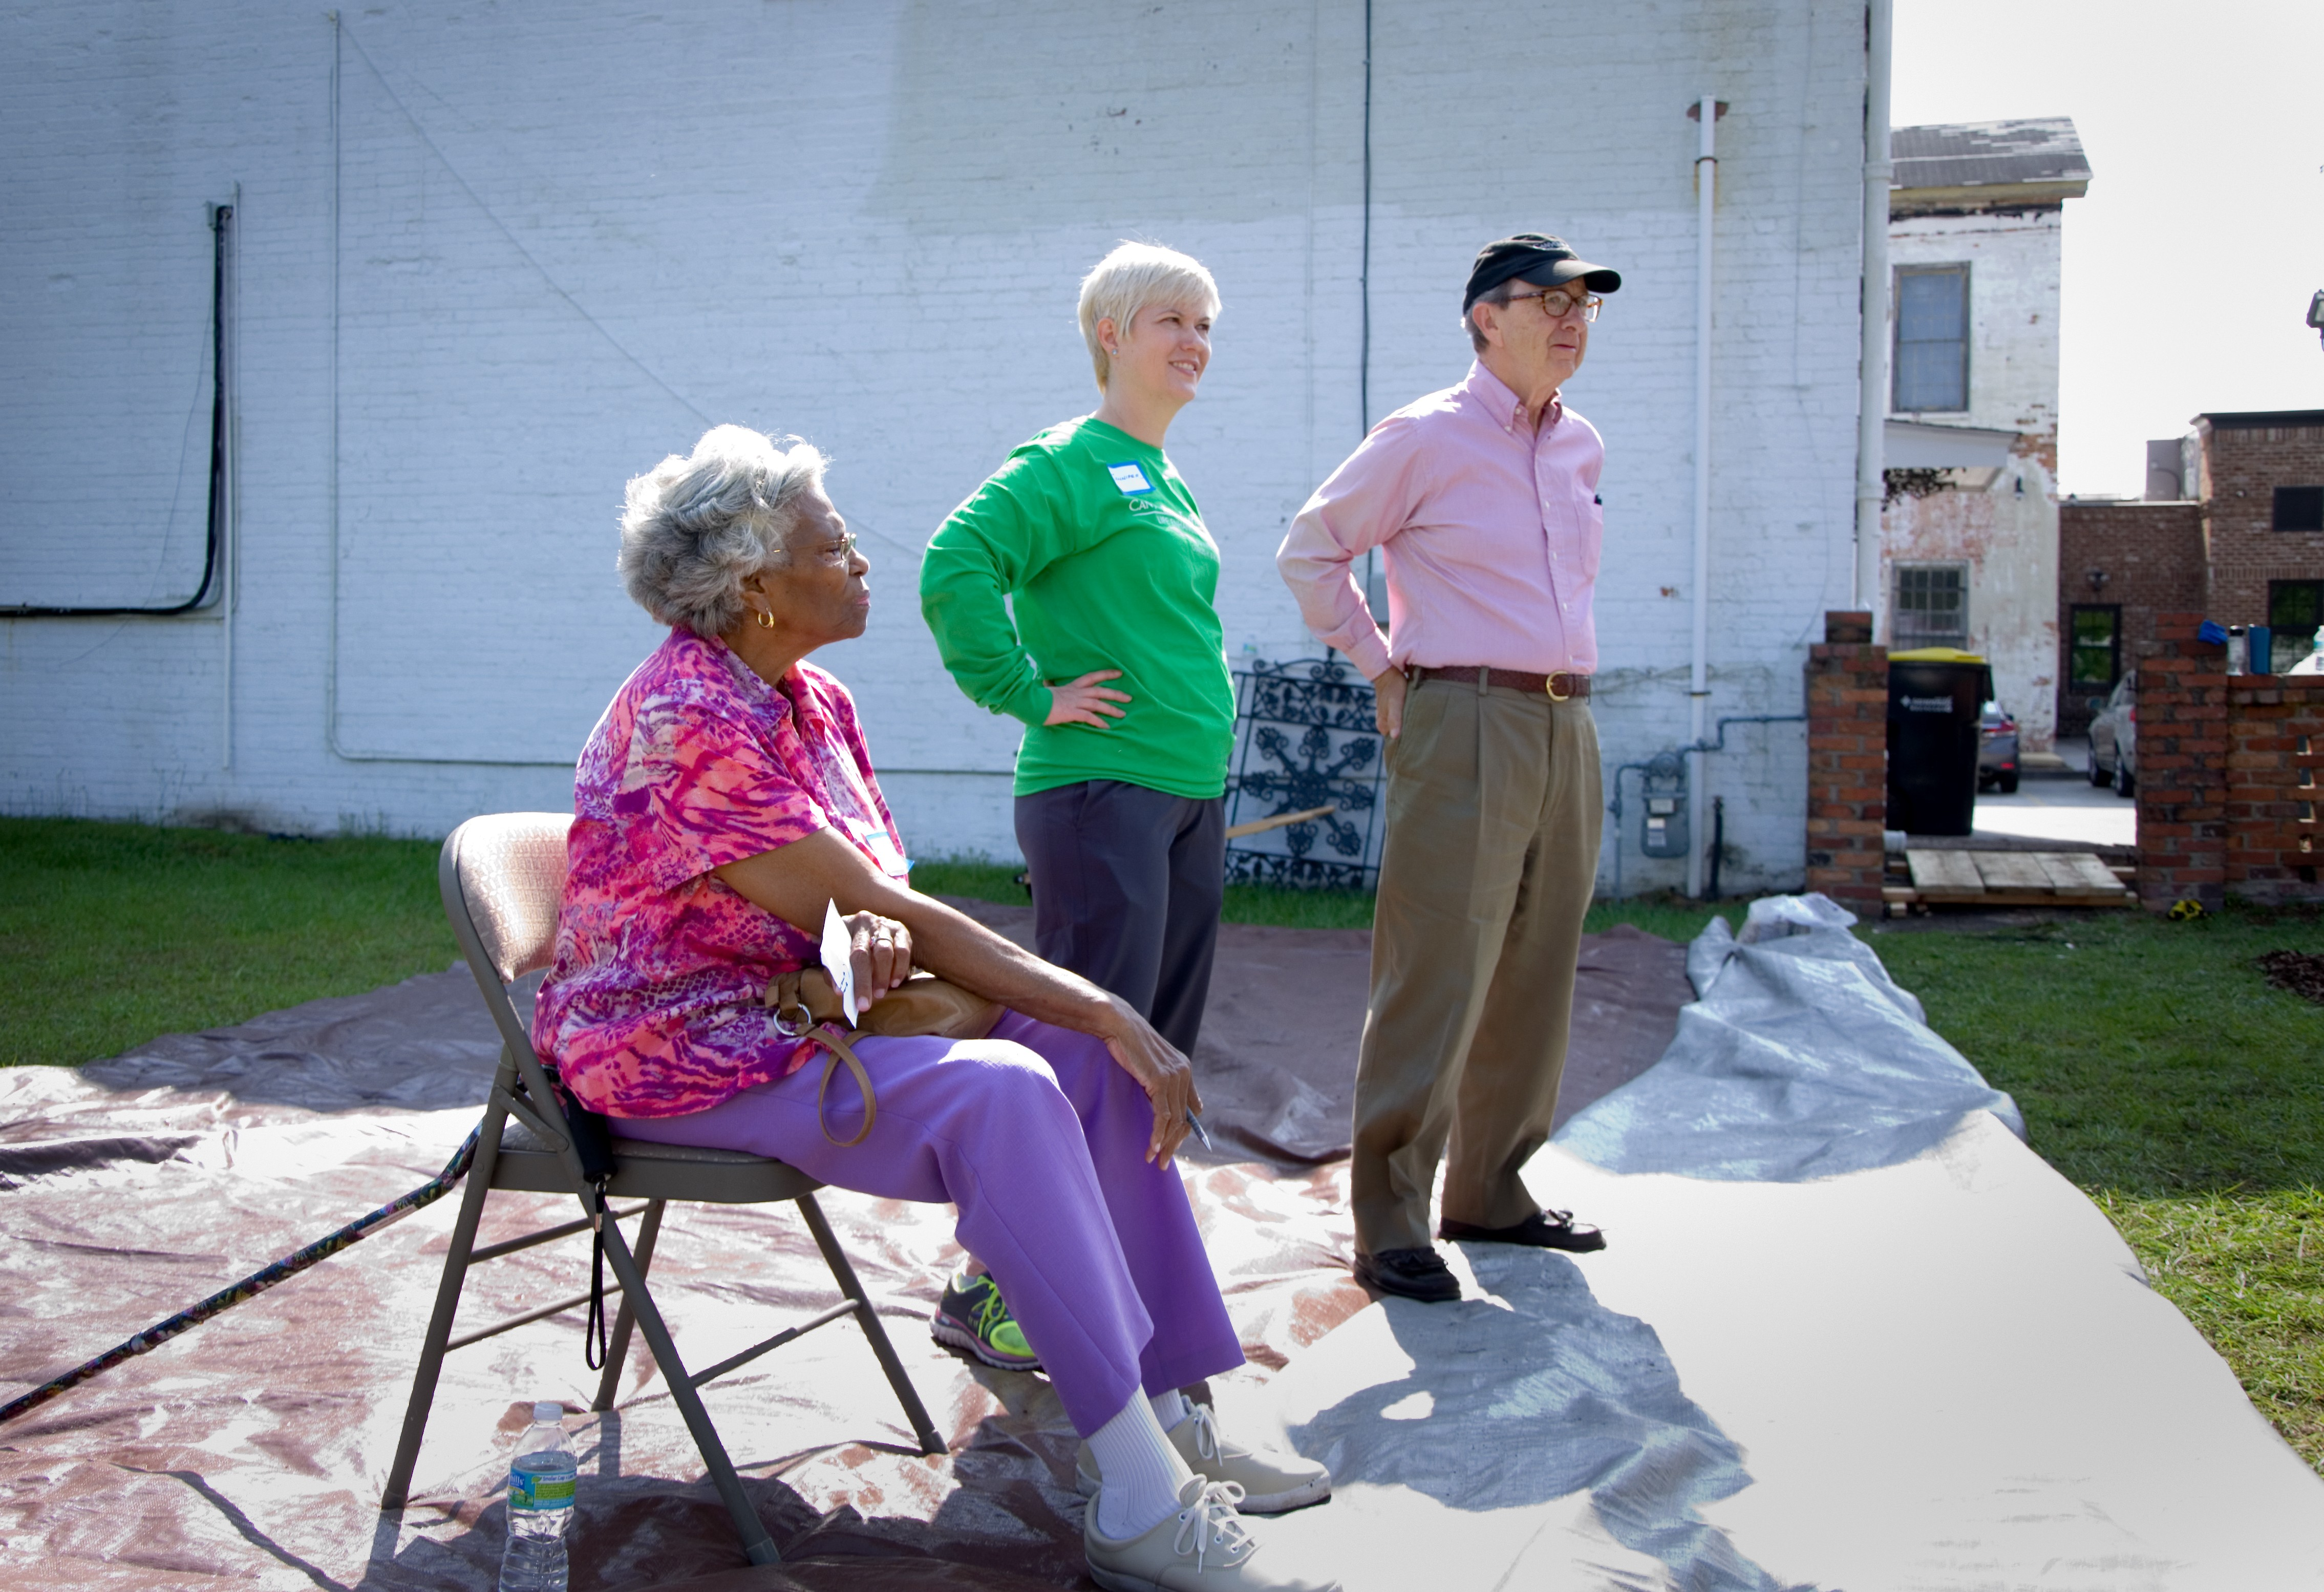 CRI Healthy Garden volunteer Catherine Torrence from Second African Baptist Church, CRI Executive Director Jennifer Cabe, and Charles H. Morris view the garden installation at Trustees' Garden, which is owned by Charles. Charles and his wife Rosalie are the funding partners for the CRI Healthy Garden.